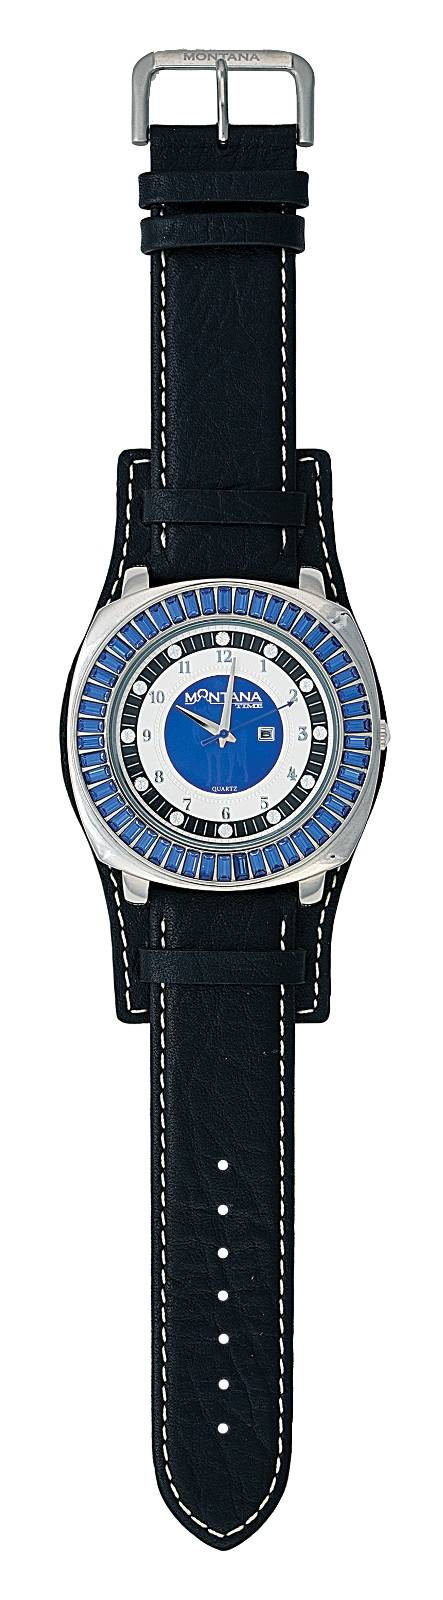 Montana Silversmiths Big Blue Leather Band Watch